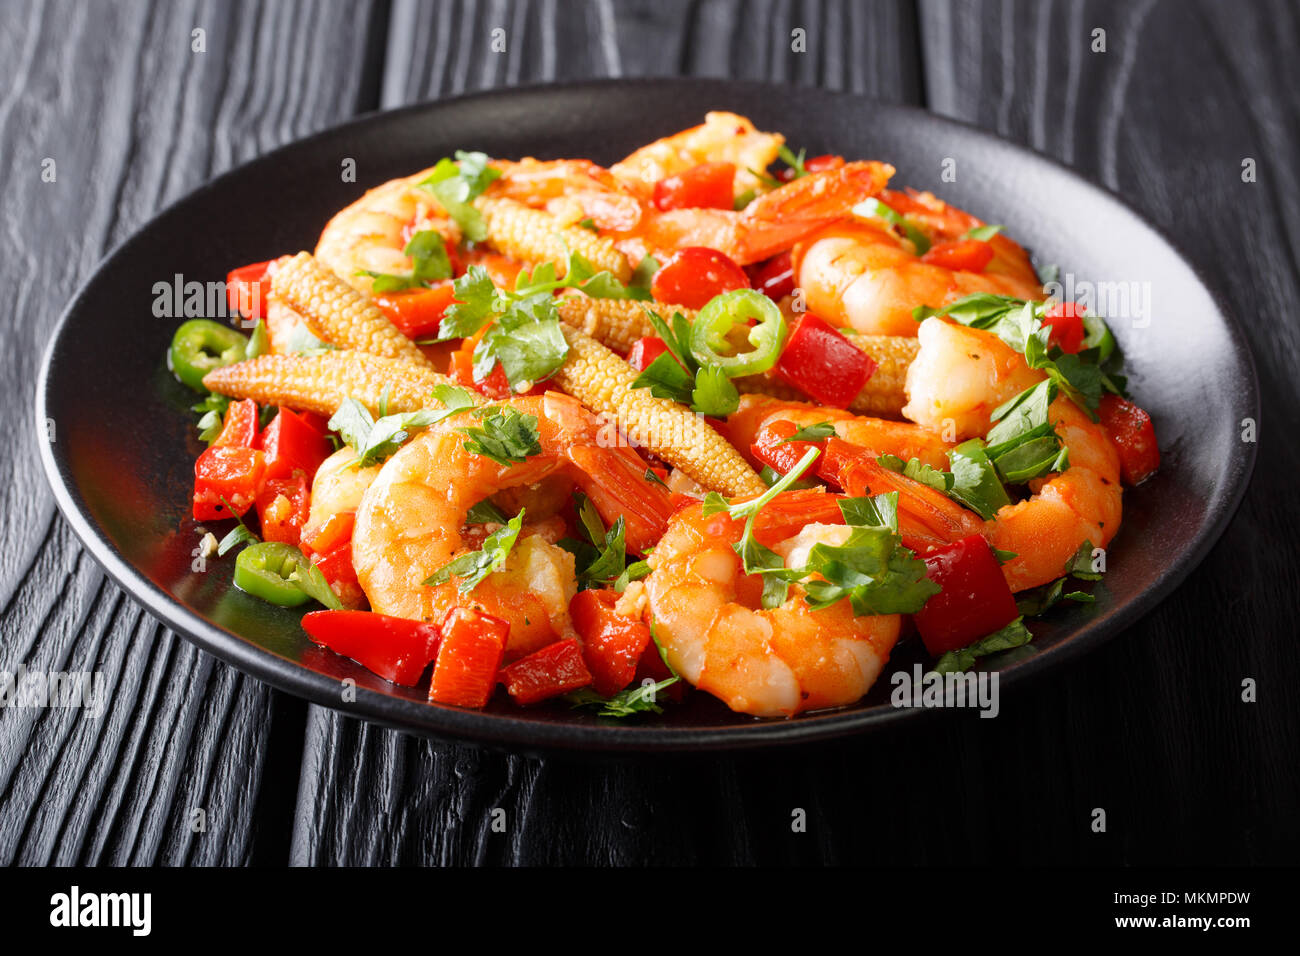 Freshly prepared Mexican prawns with sweet peppers, chili, garlic, corn cobs and herbs close-up on a plate. horizontal - Stock Image